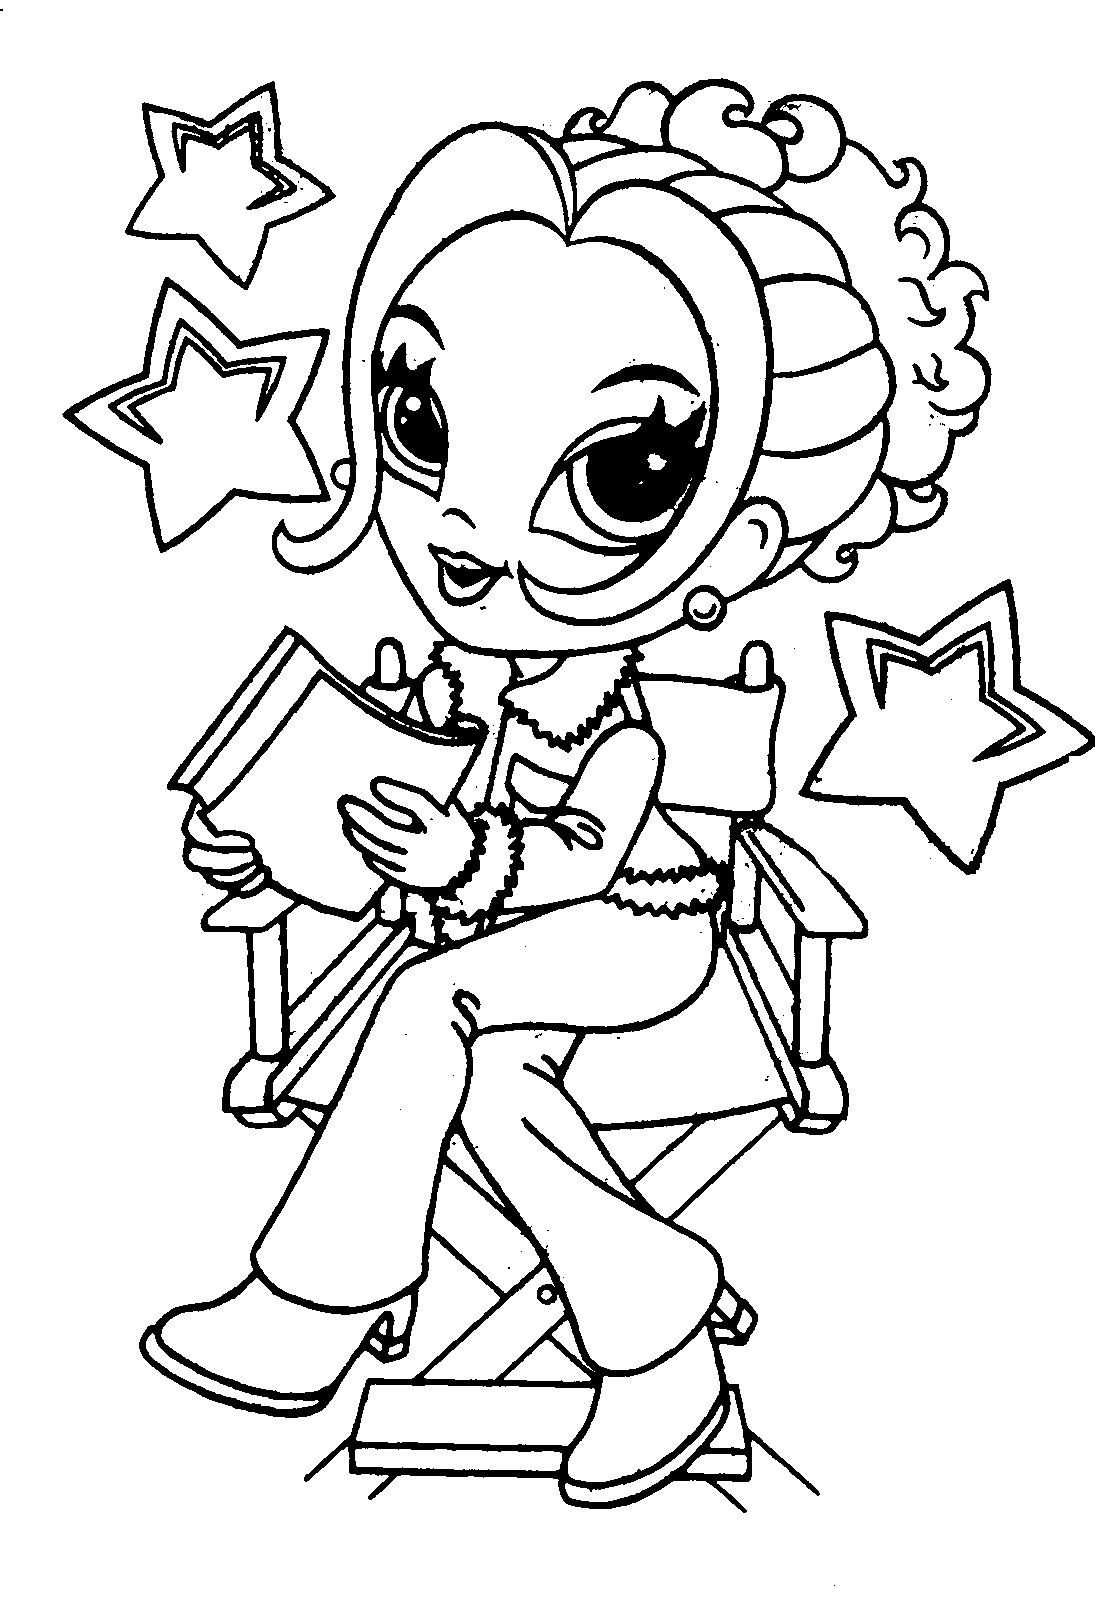 lisa frank coloring pages - photo#29